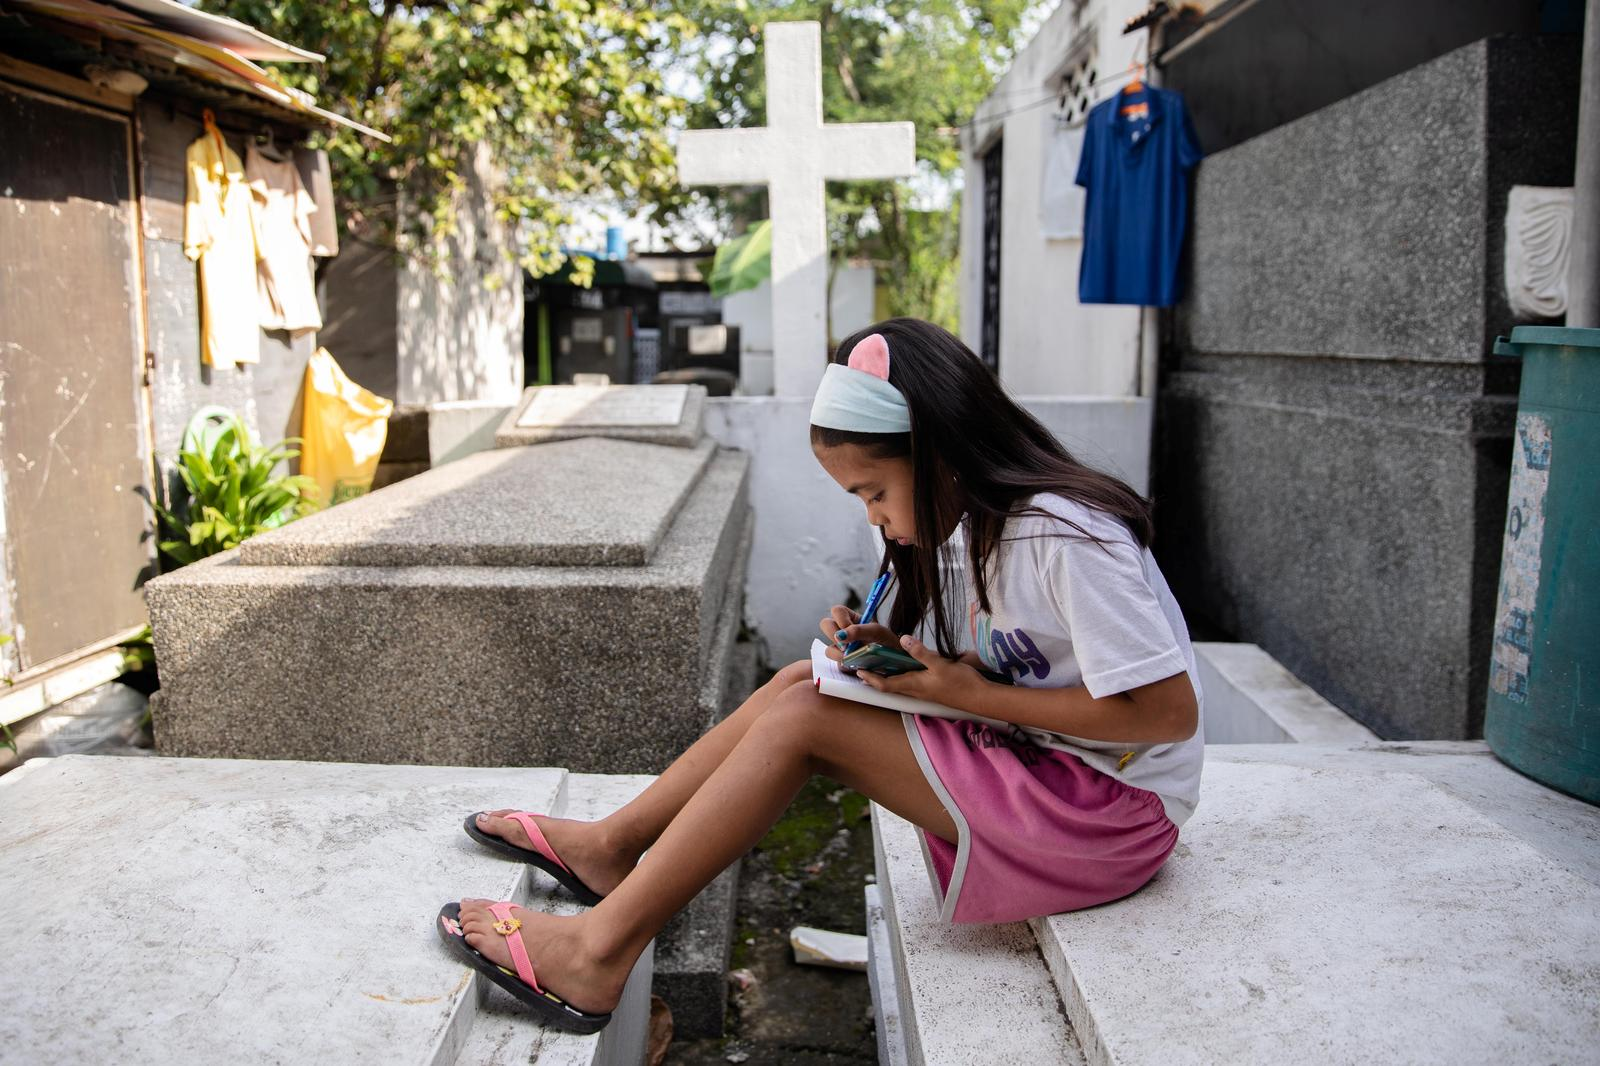 Grade 5 student Lovely Joy De Castro, 11, takes notes while attending an online class using a smartphone, as schools remain closed during the Coronavirus disease (COVID-19) outbreak, at Manila South Cemetery where she lives with her family in Makati City, Philippines, November 6, 2020. 'I just hope that she finishes school, gets a good job, and ultimately finds a life outside this cemetery,' said Castro's grandmother Angeline Delos Santos about her granddaughter. Photo: Reuters